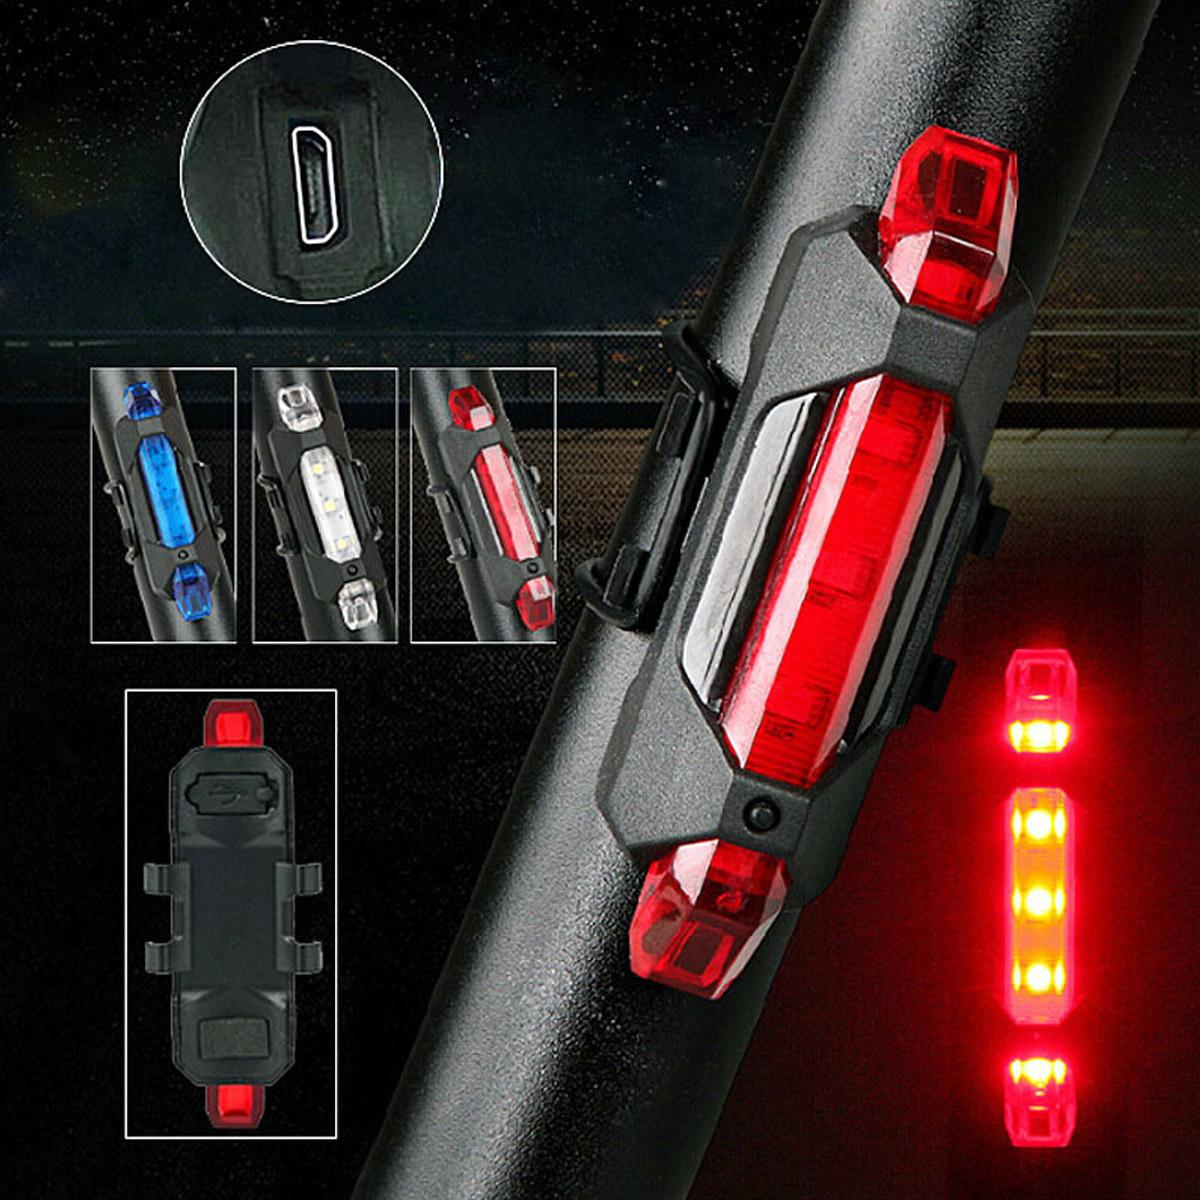 Nuevo Portátil LED USB Recargable Ciclismo Light Bike Tail Luz de Advertencia de Seguridad Trasera 55 YS-BUY C18122601